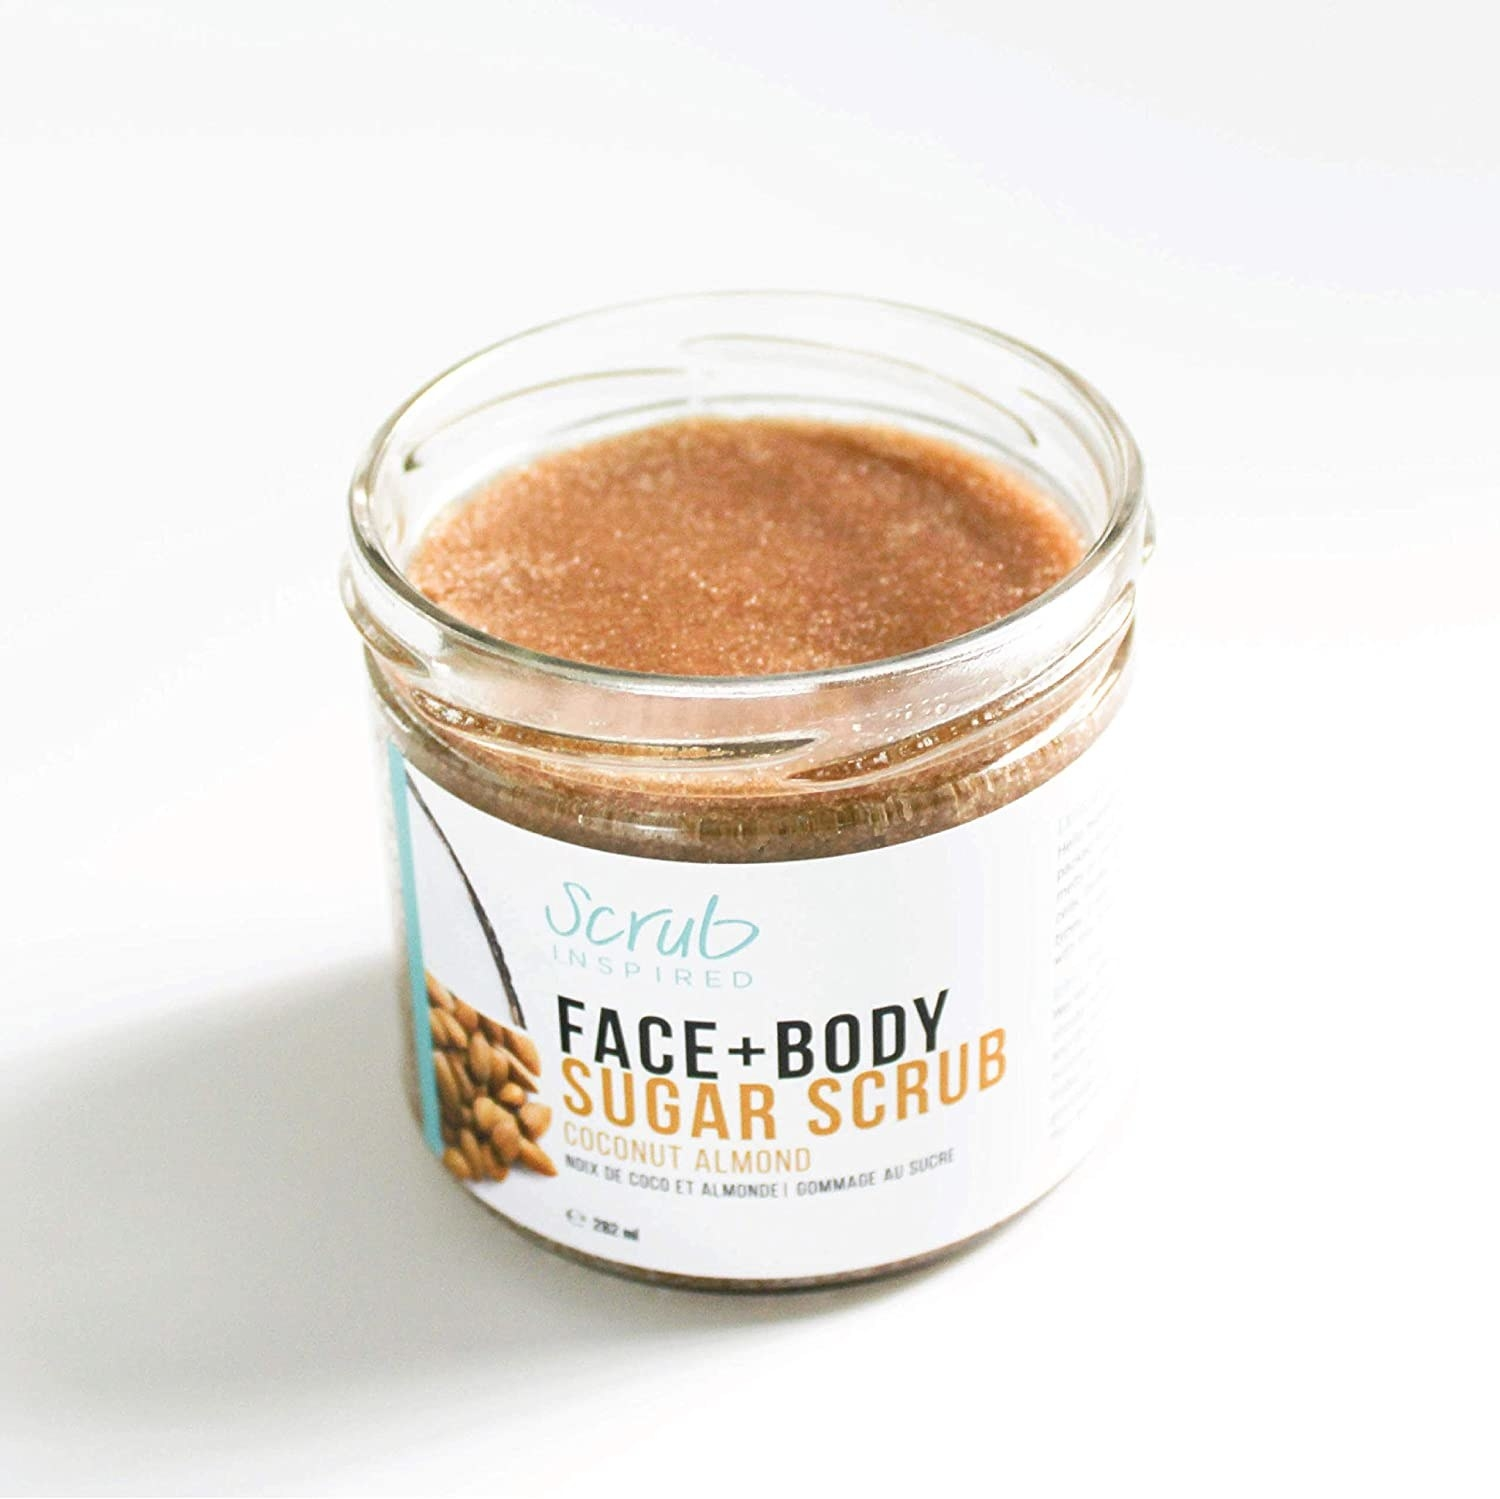 An jar of the exfoliant on a plain countertop to show off the texture of the product